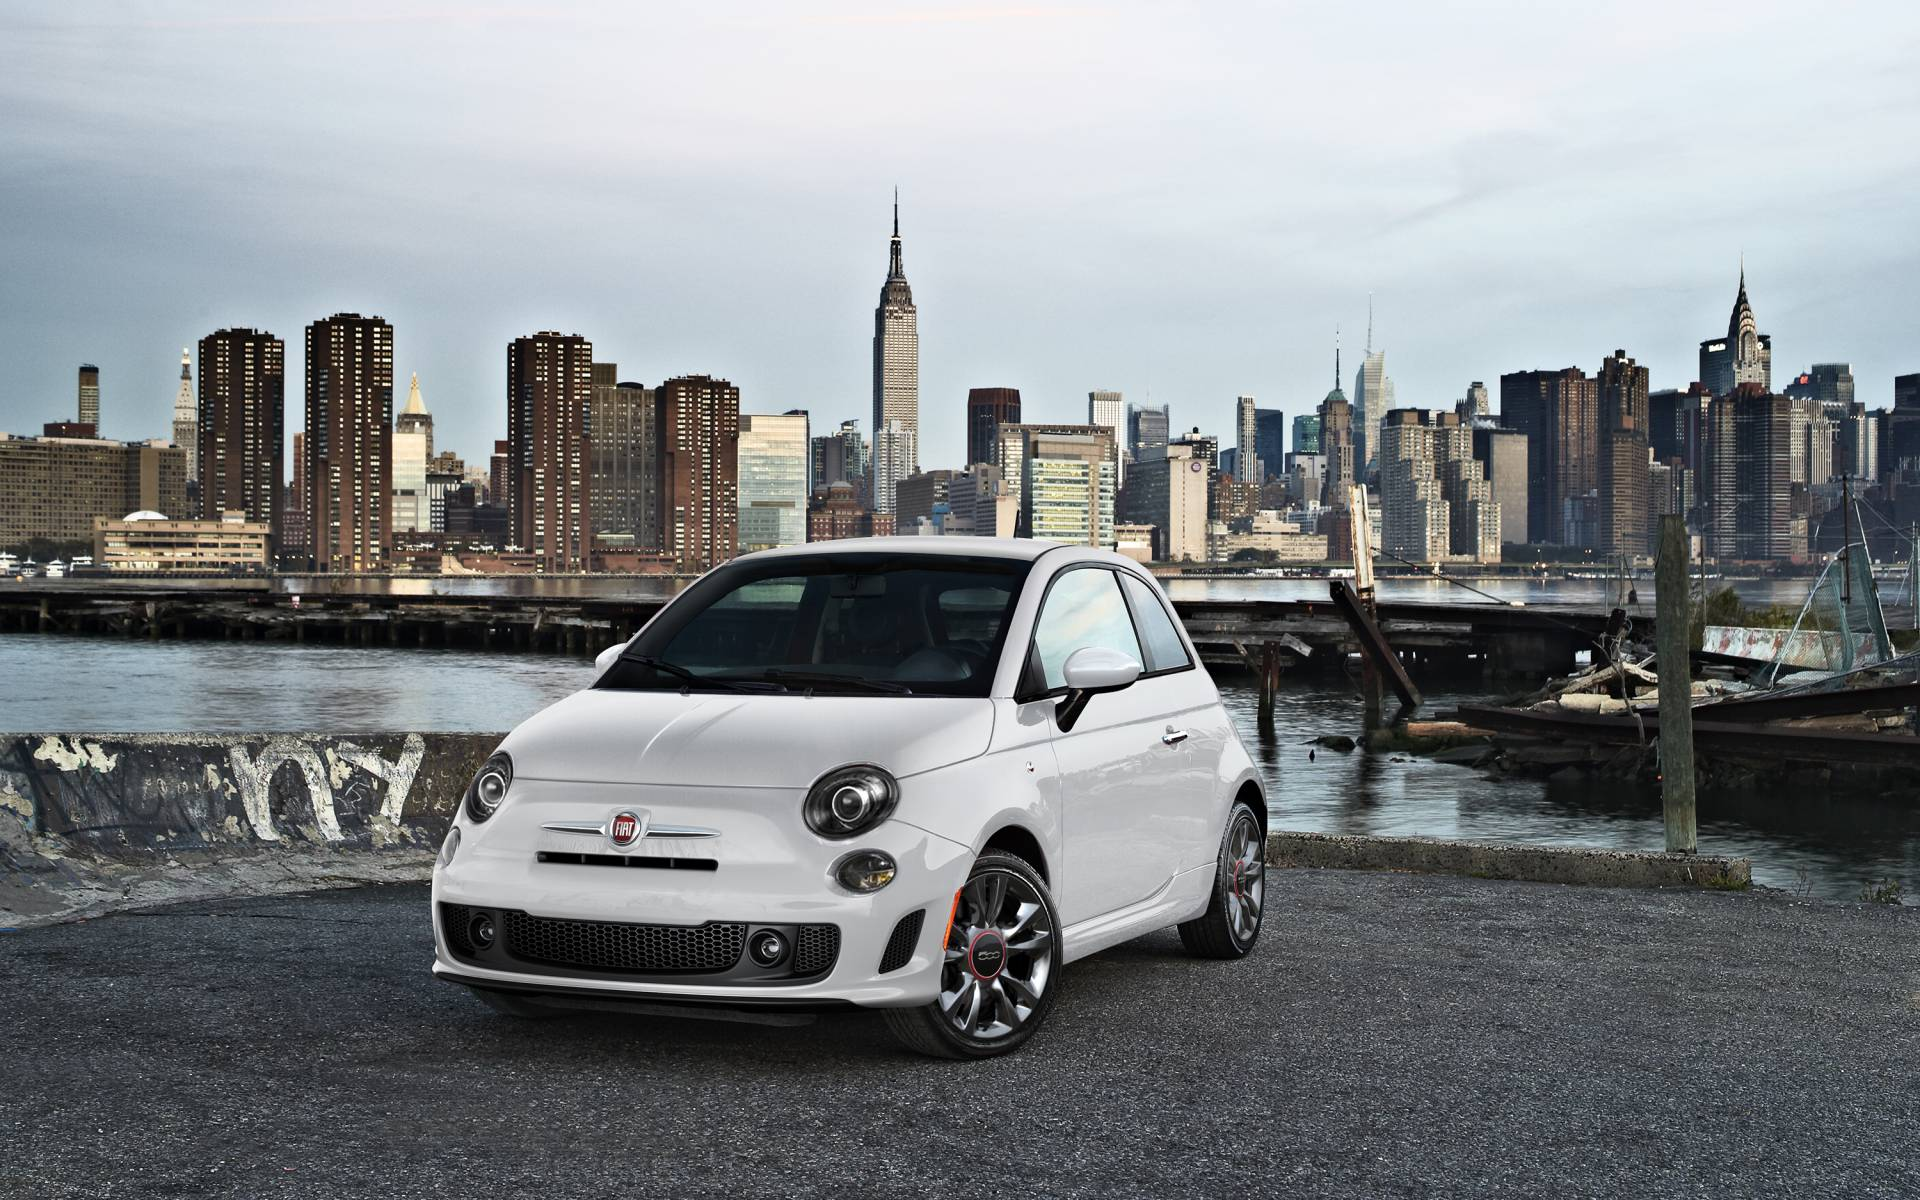 2019 Fiat 500   News reviews picture galleries and videos   The 1920x1200